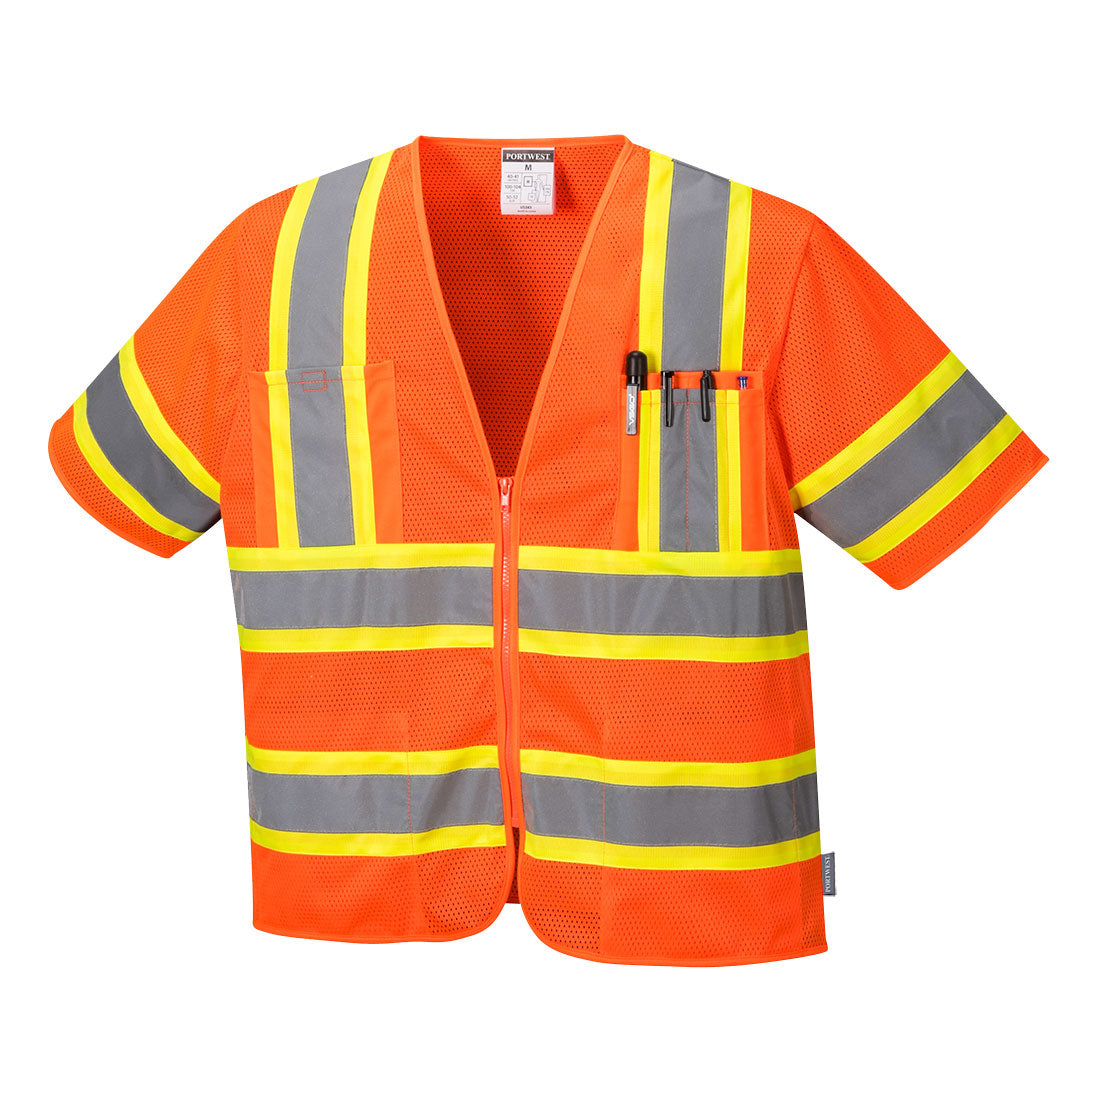 Portwest US383 Augusta Sleeved Hi-Vis Vest